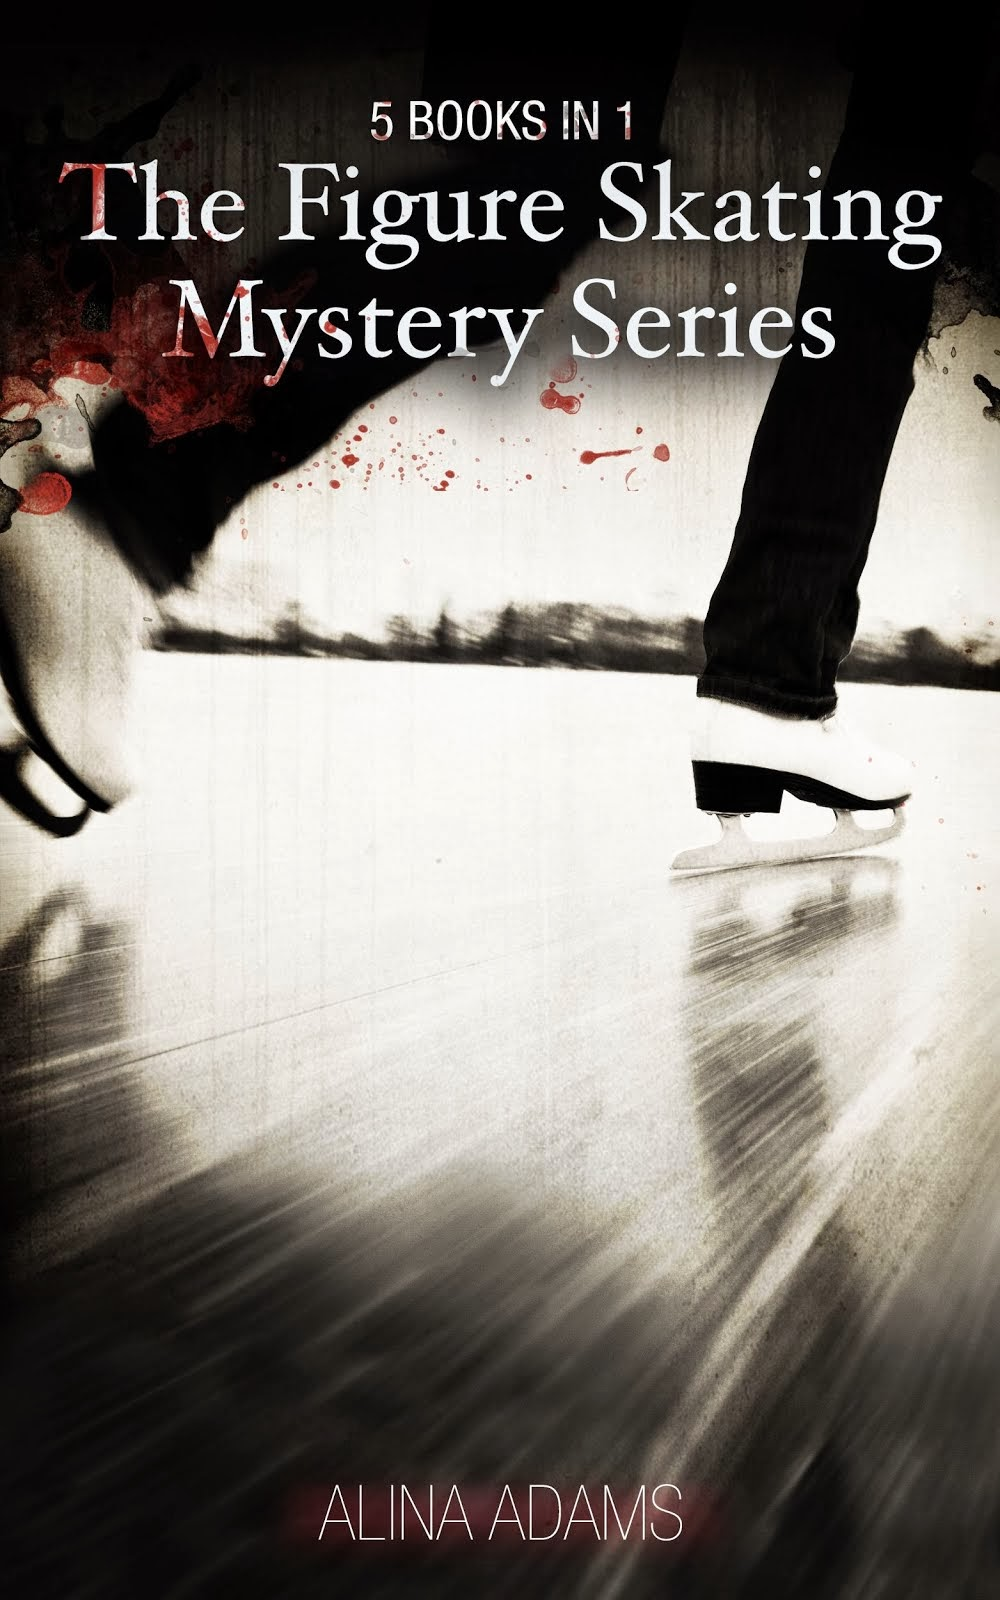 All 5 Figure Skating Mysteries Now Available in 1 Book!